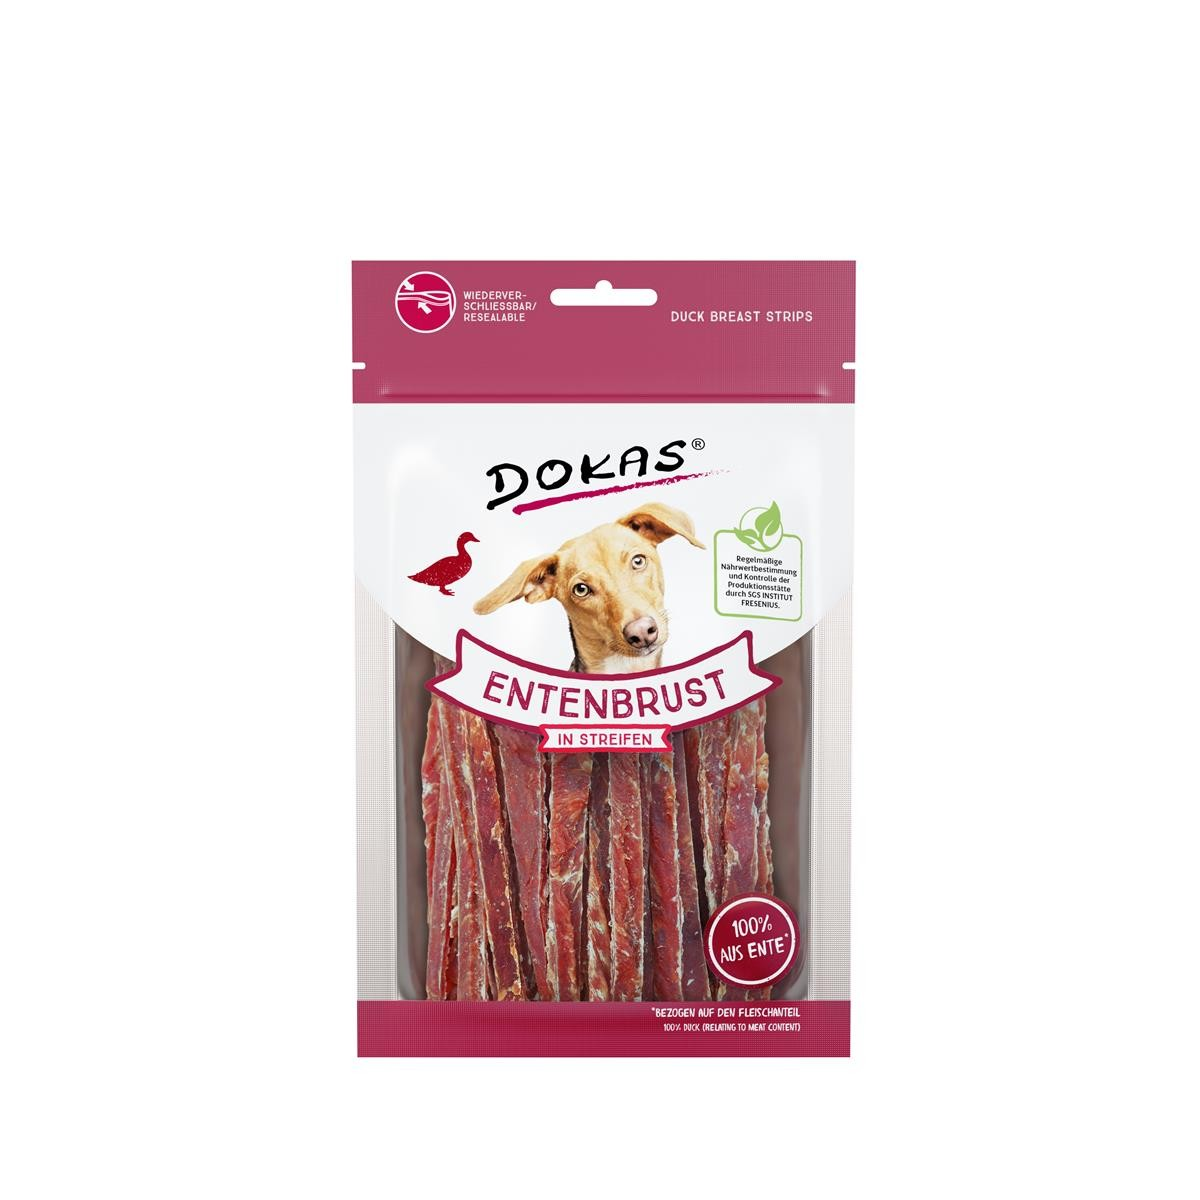 Dokas Dog Snack Entenbrust in Streifen 70g Hundesnack